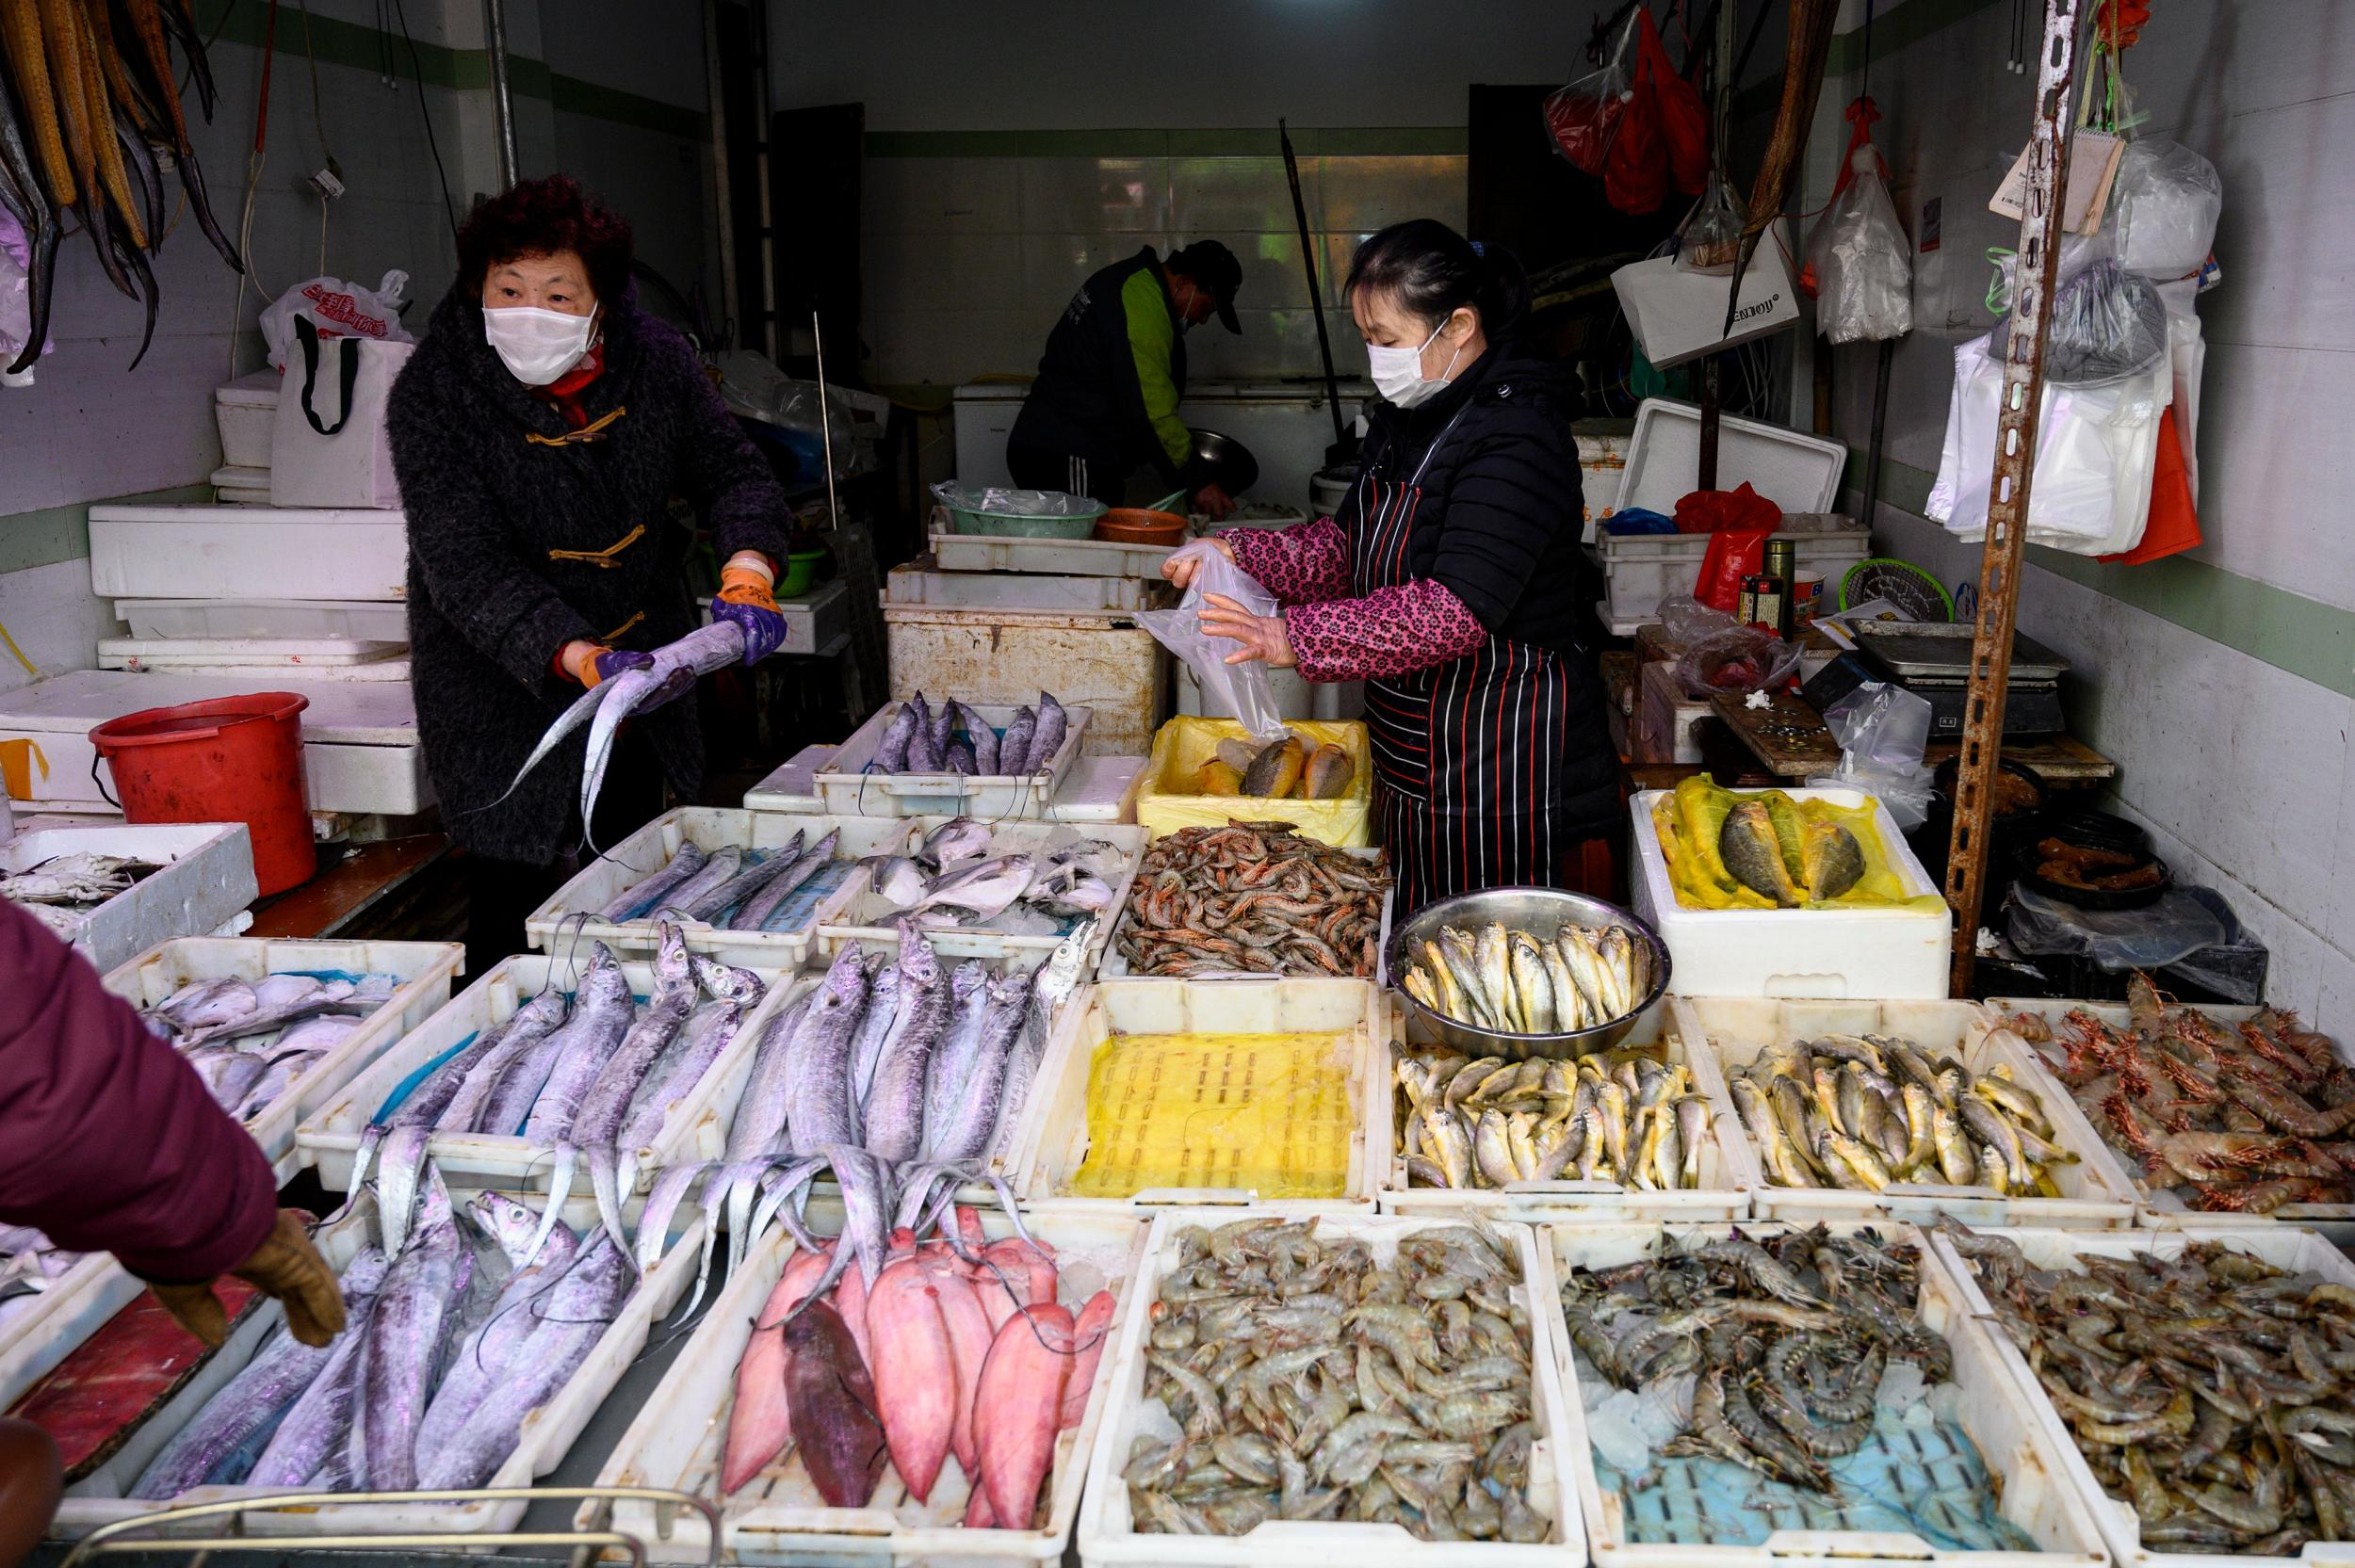 'Life will always find a way': China tries to shut down wildlife trade but markets remain open thumbnail